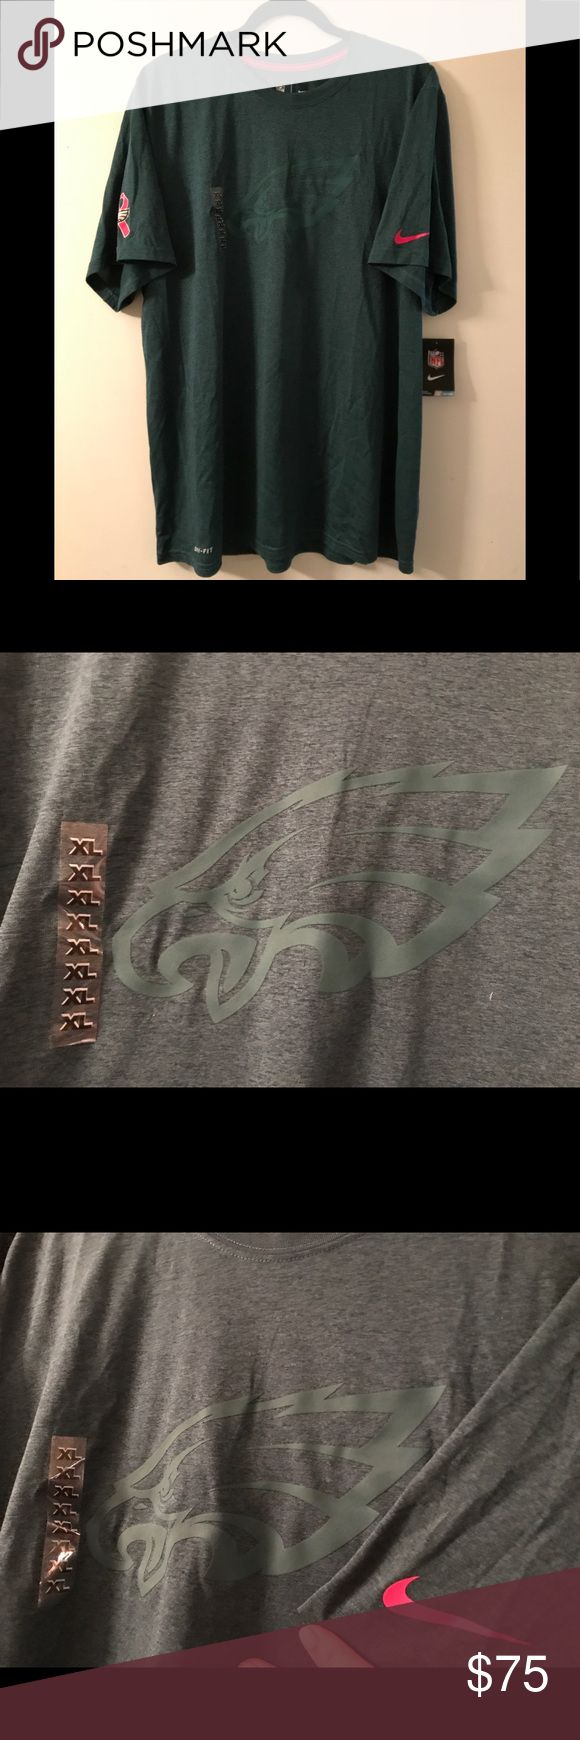 NIKE Philadelphia Eagles special edition tee Super Bowl champs 2018 Philadelphia Eagles short sleeve dri-fit with special edition breast cancer pink ribbon on right sleeve & pink whoosh on left sleeve. Authentic NFL Team apparel. NWT! Nike Shirts Tees - Short Sleeve